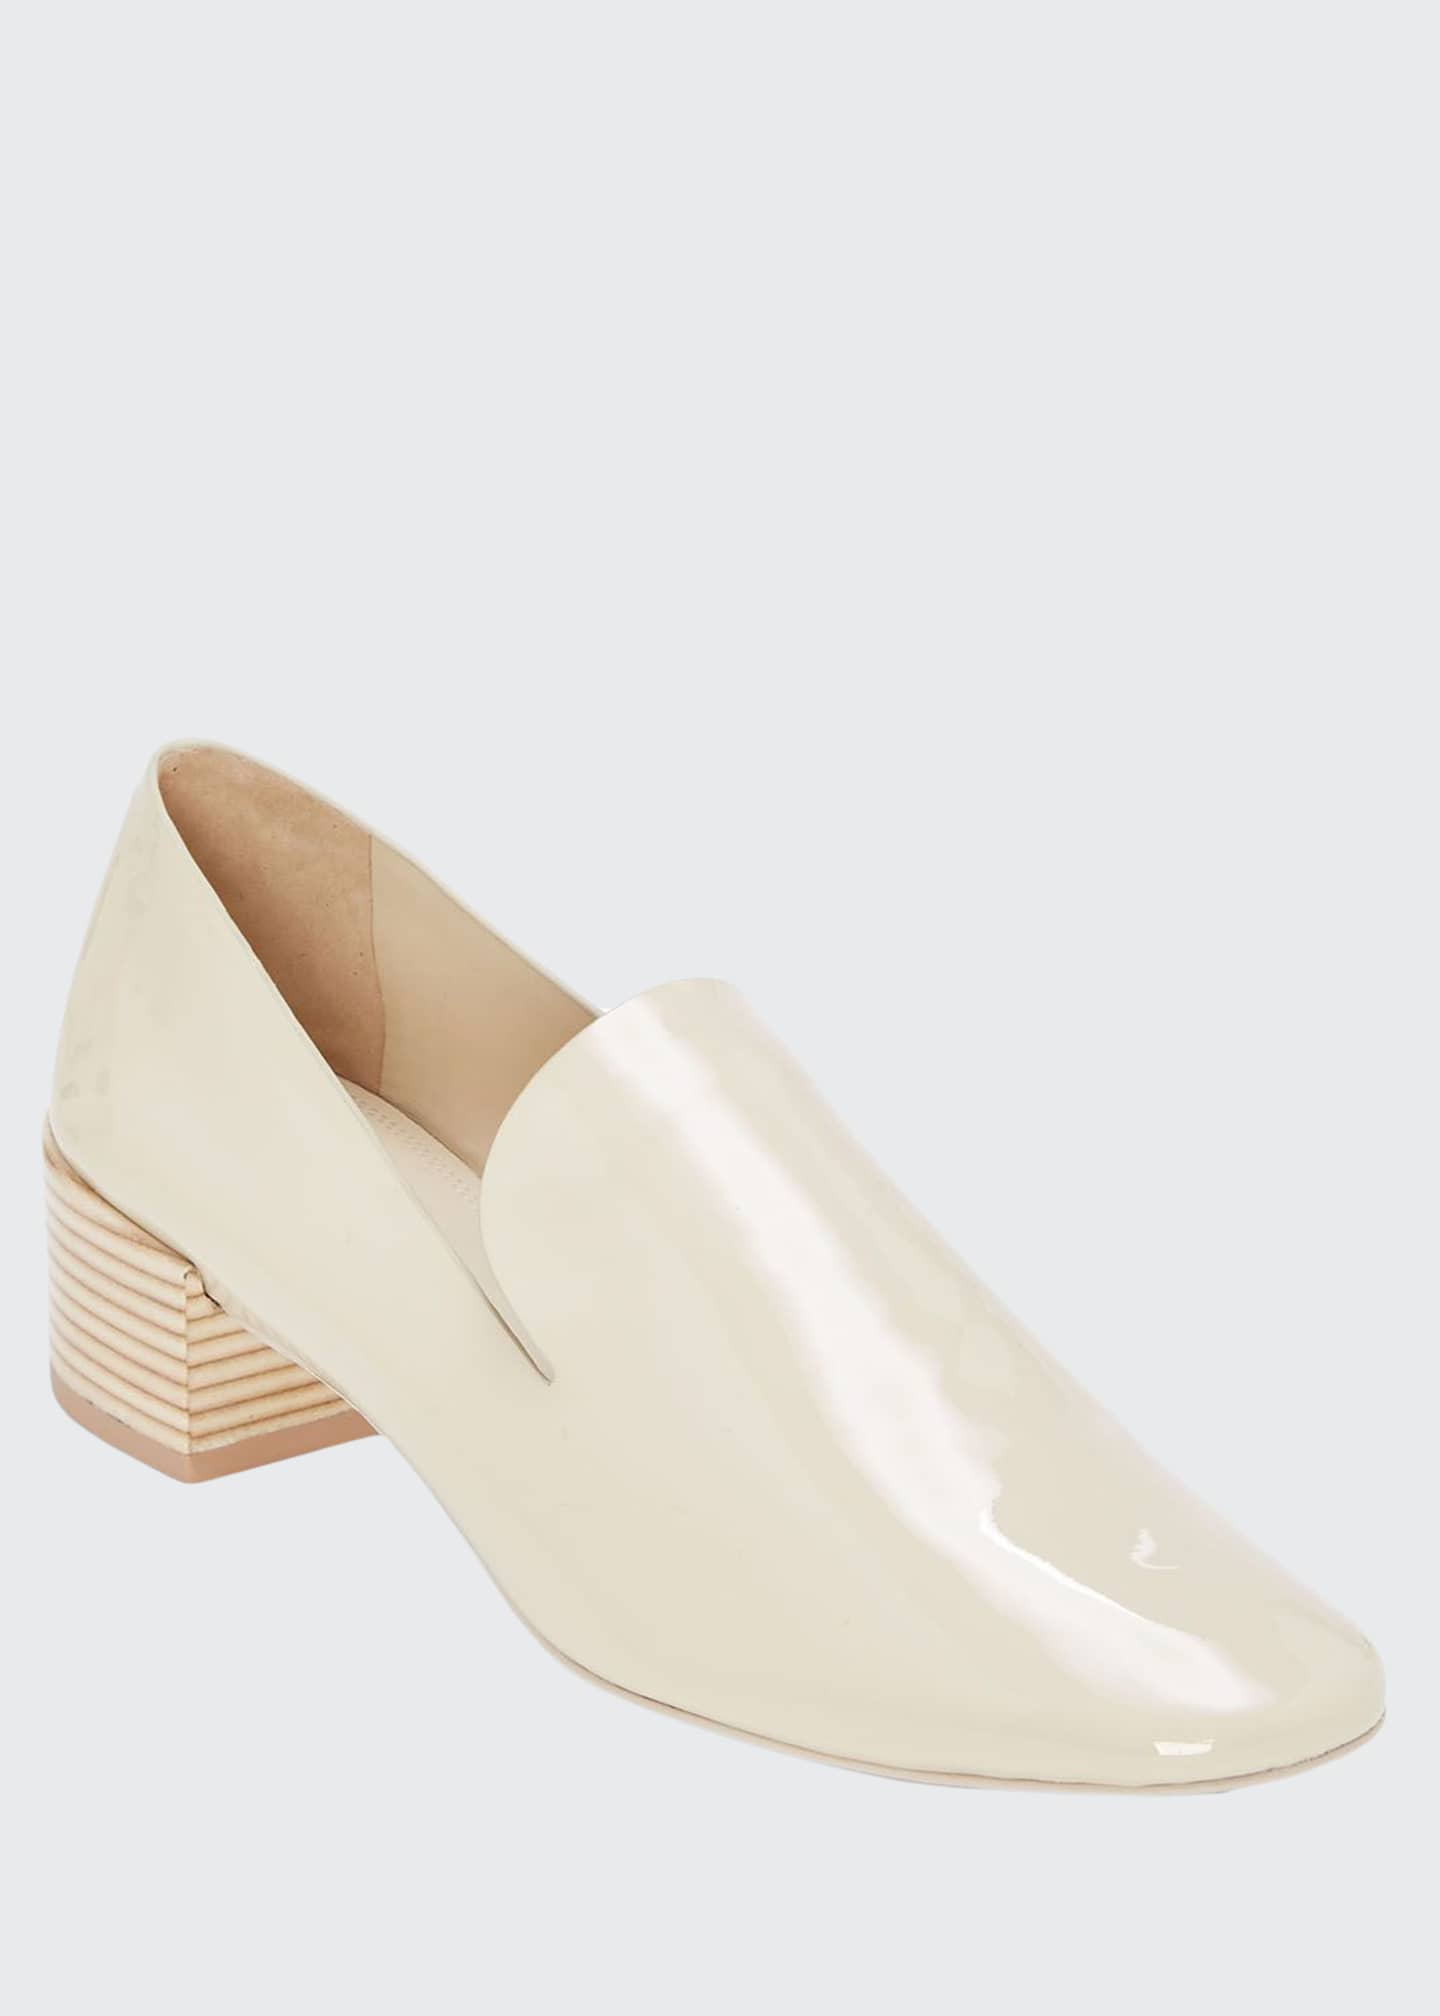 Mercedes Castillo Tillie Leather Block-Heel Loafers